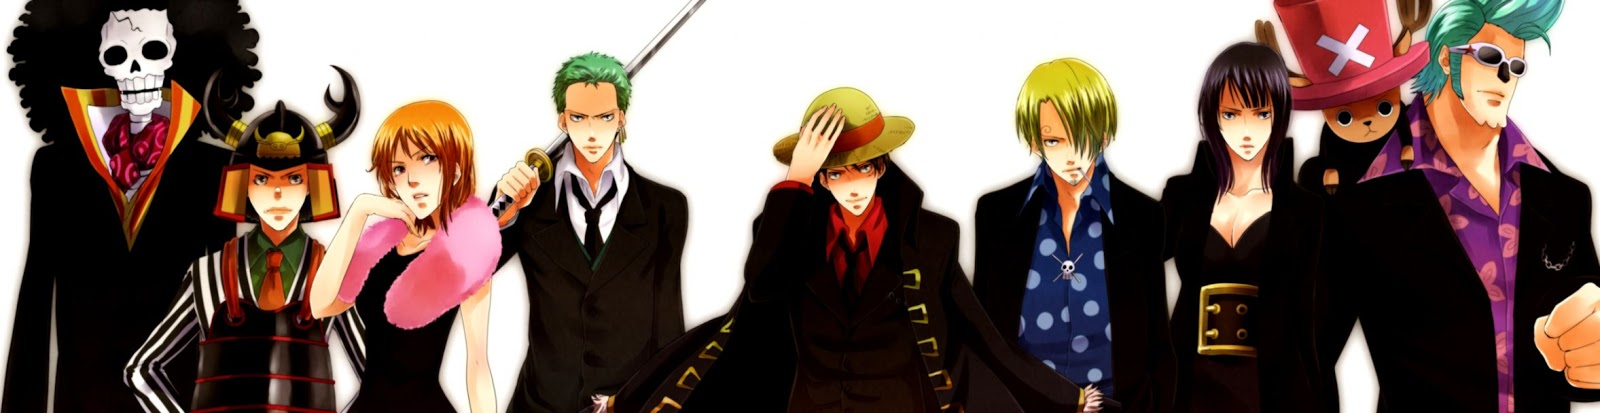 Nami Zoro Luffy Brook One Piece Wallpaper Wallpapers Style